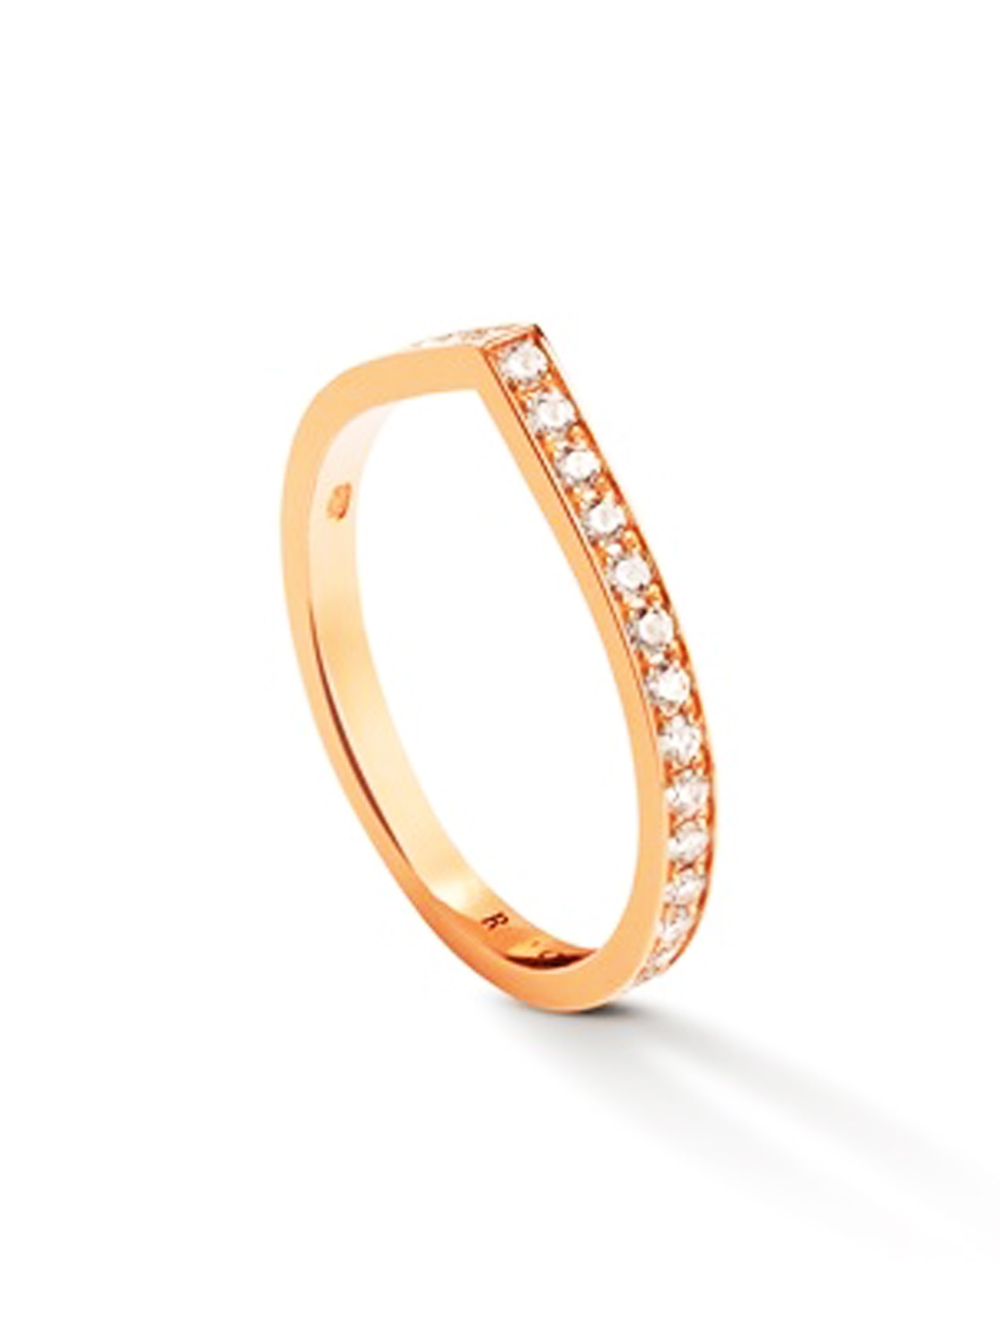 Anfiter Ring one paved row